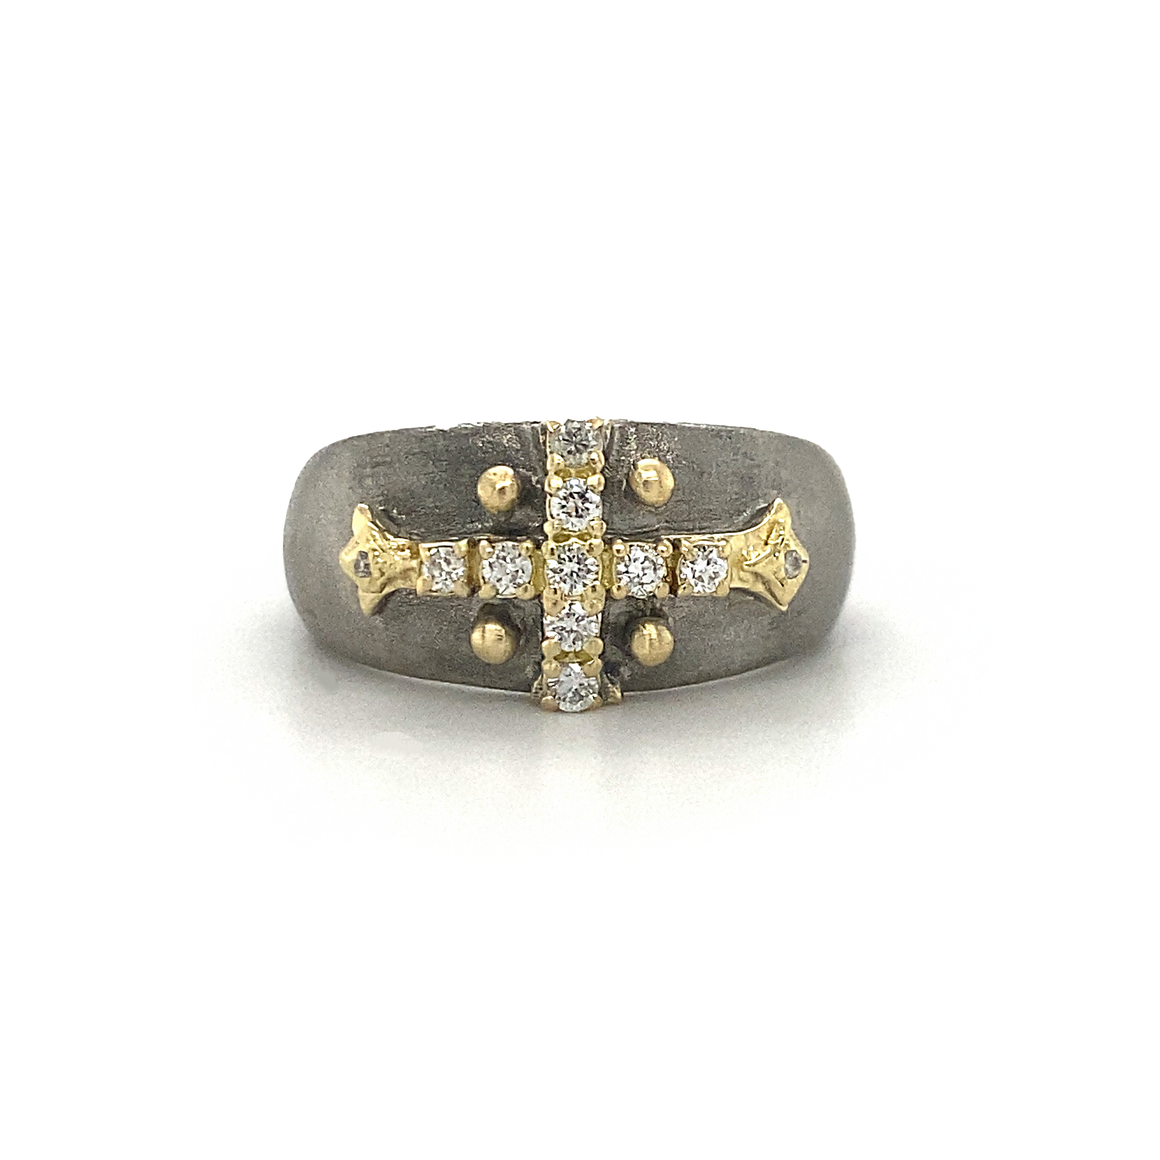 Old World Pointed Cross Ring - Lesley Ann Jewels